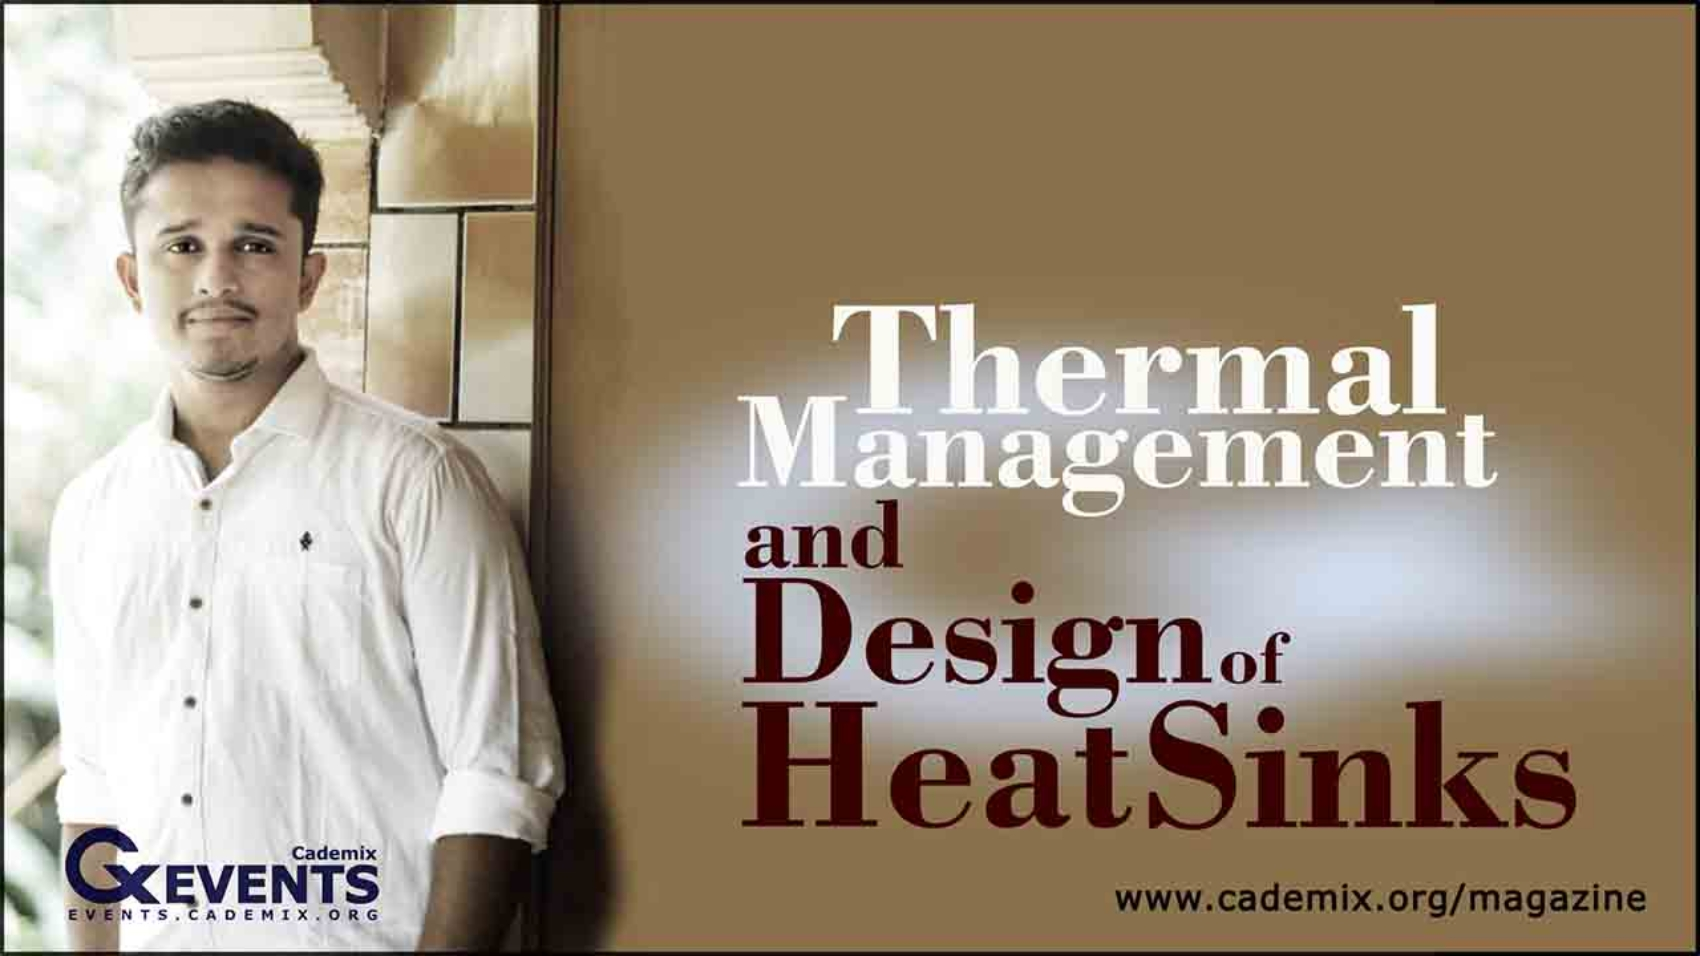 Thermal Management and Design of Heat Sinks Jewel Antony Cademix Magazine Jewel Antony Cademix Magazine